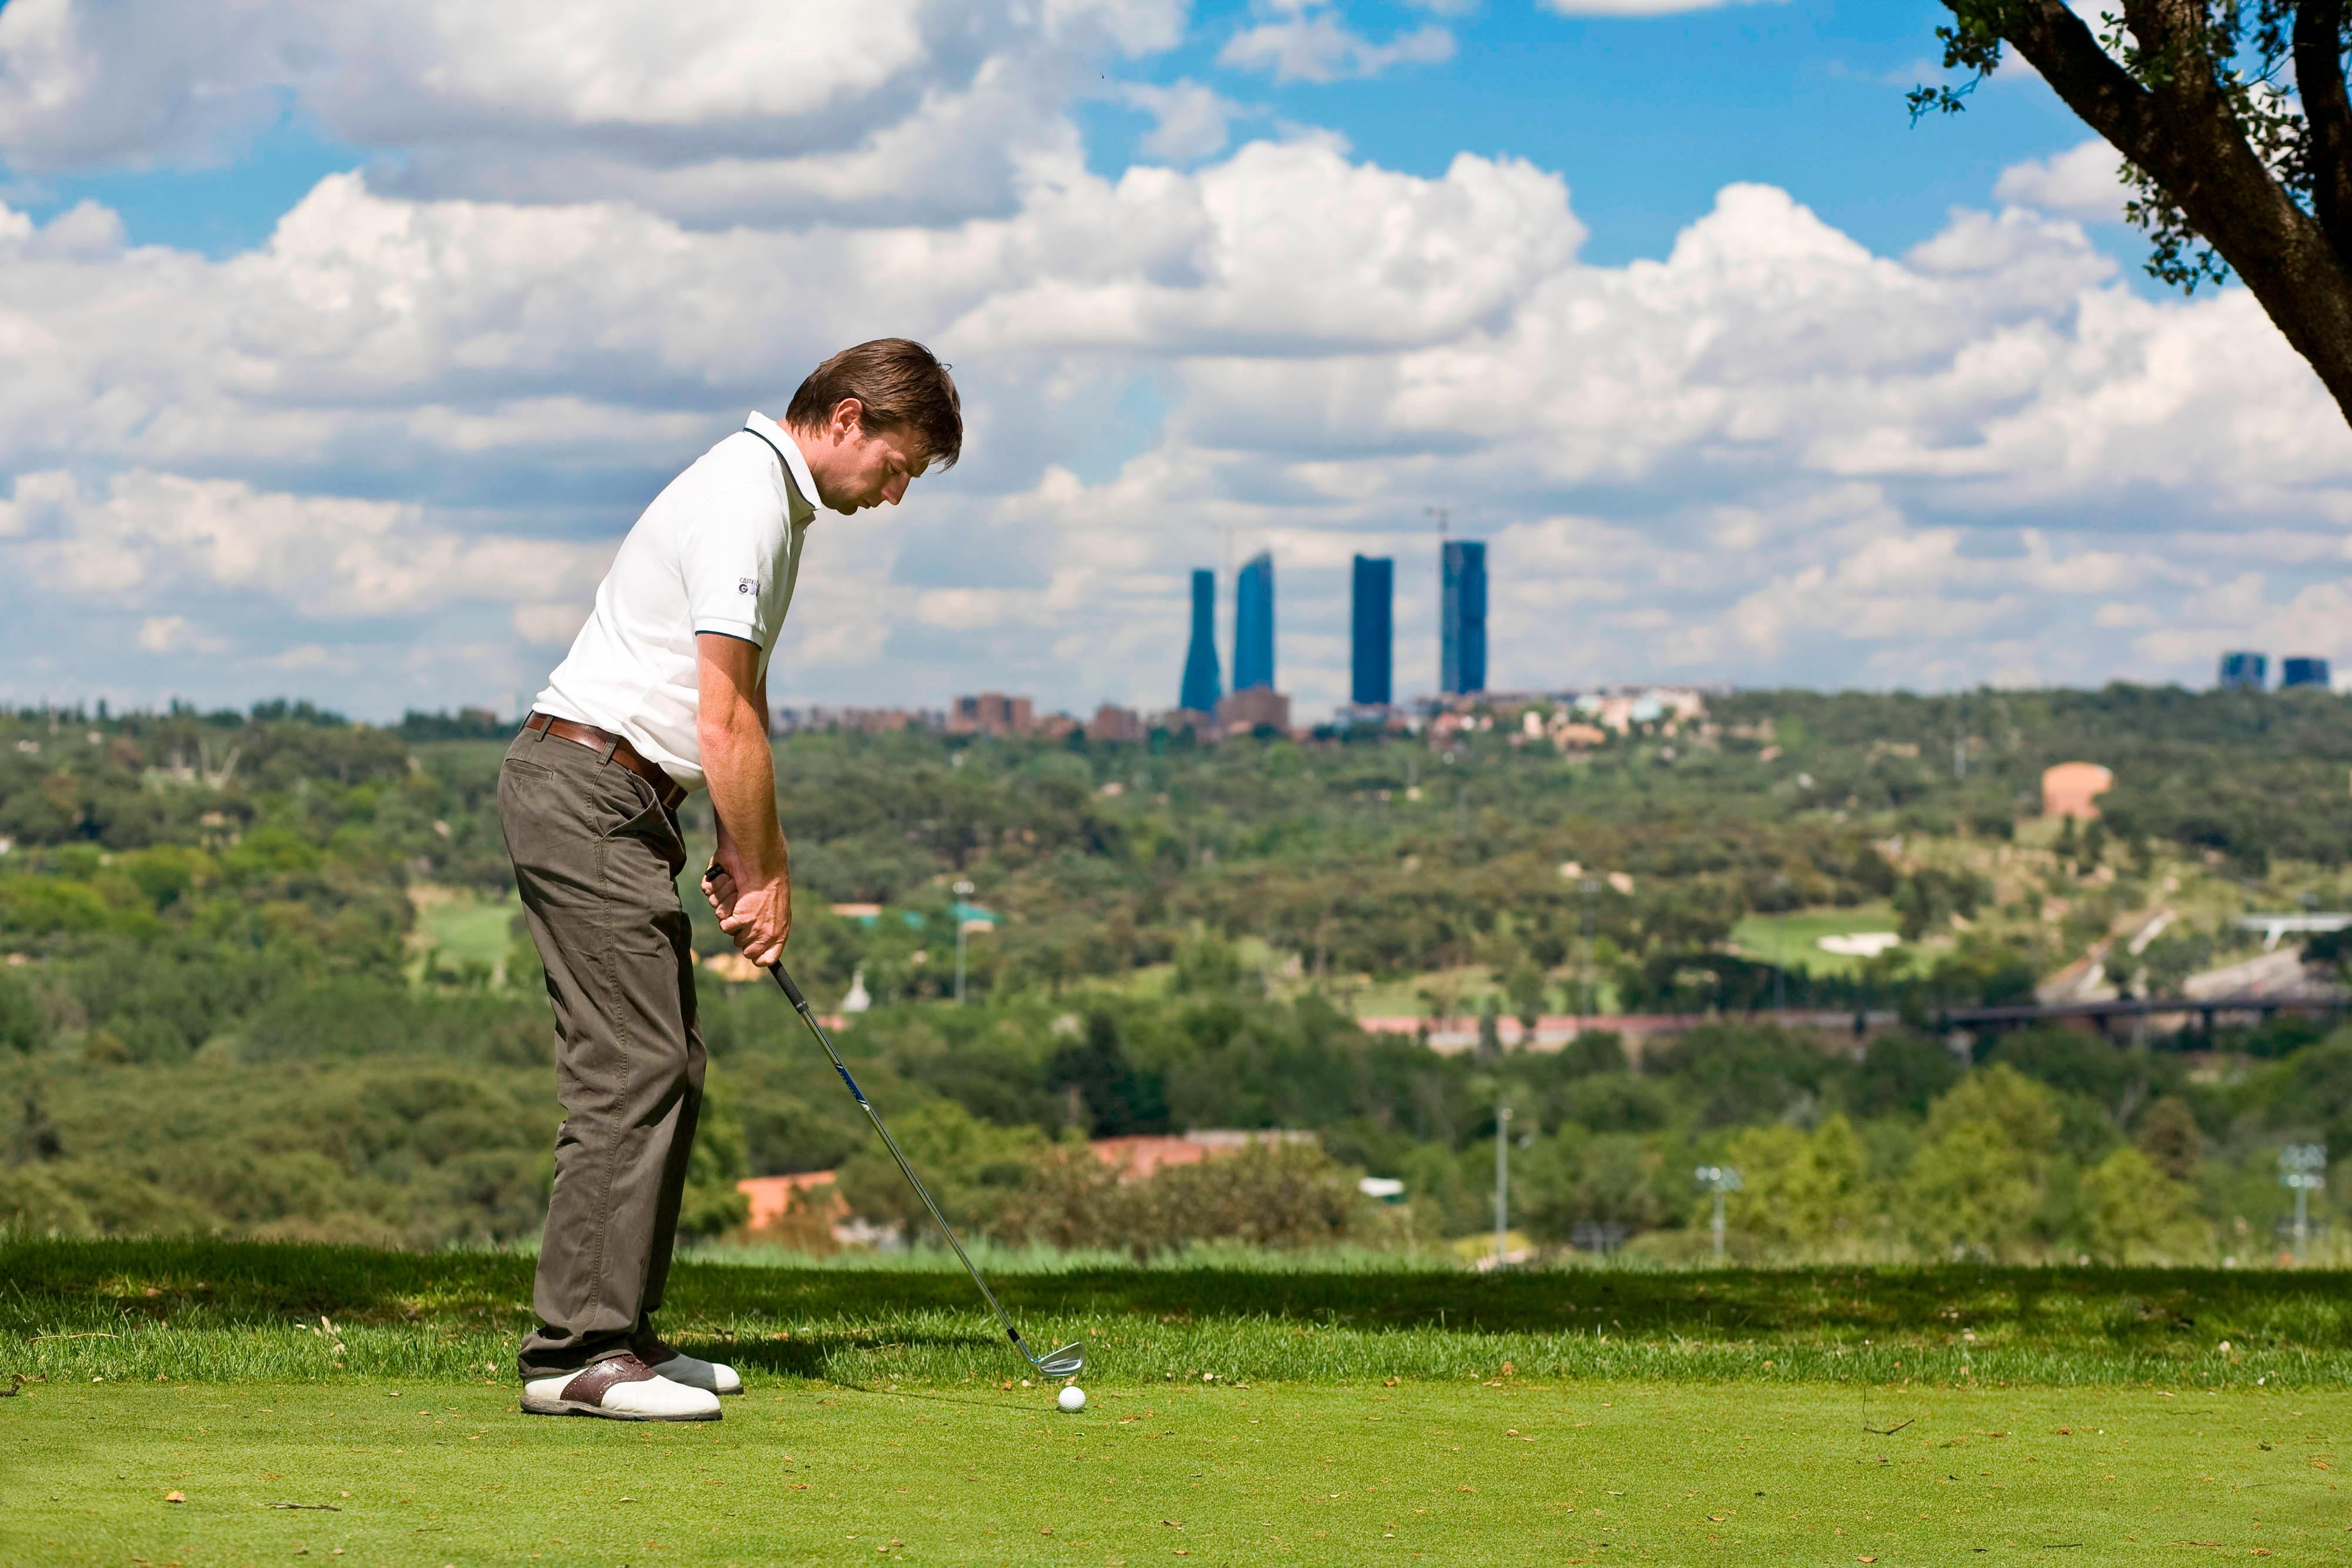 Campo de golf en Madrid